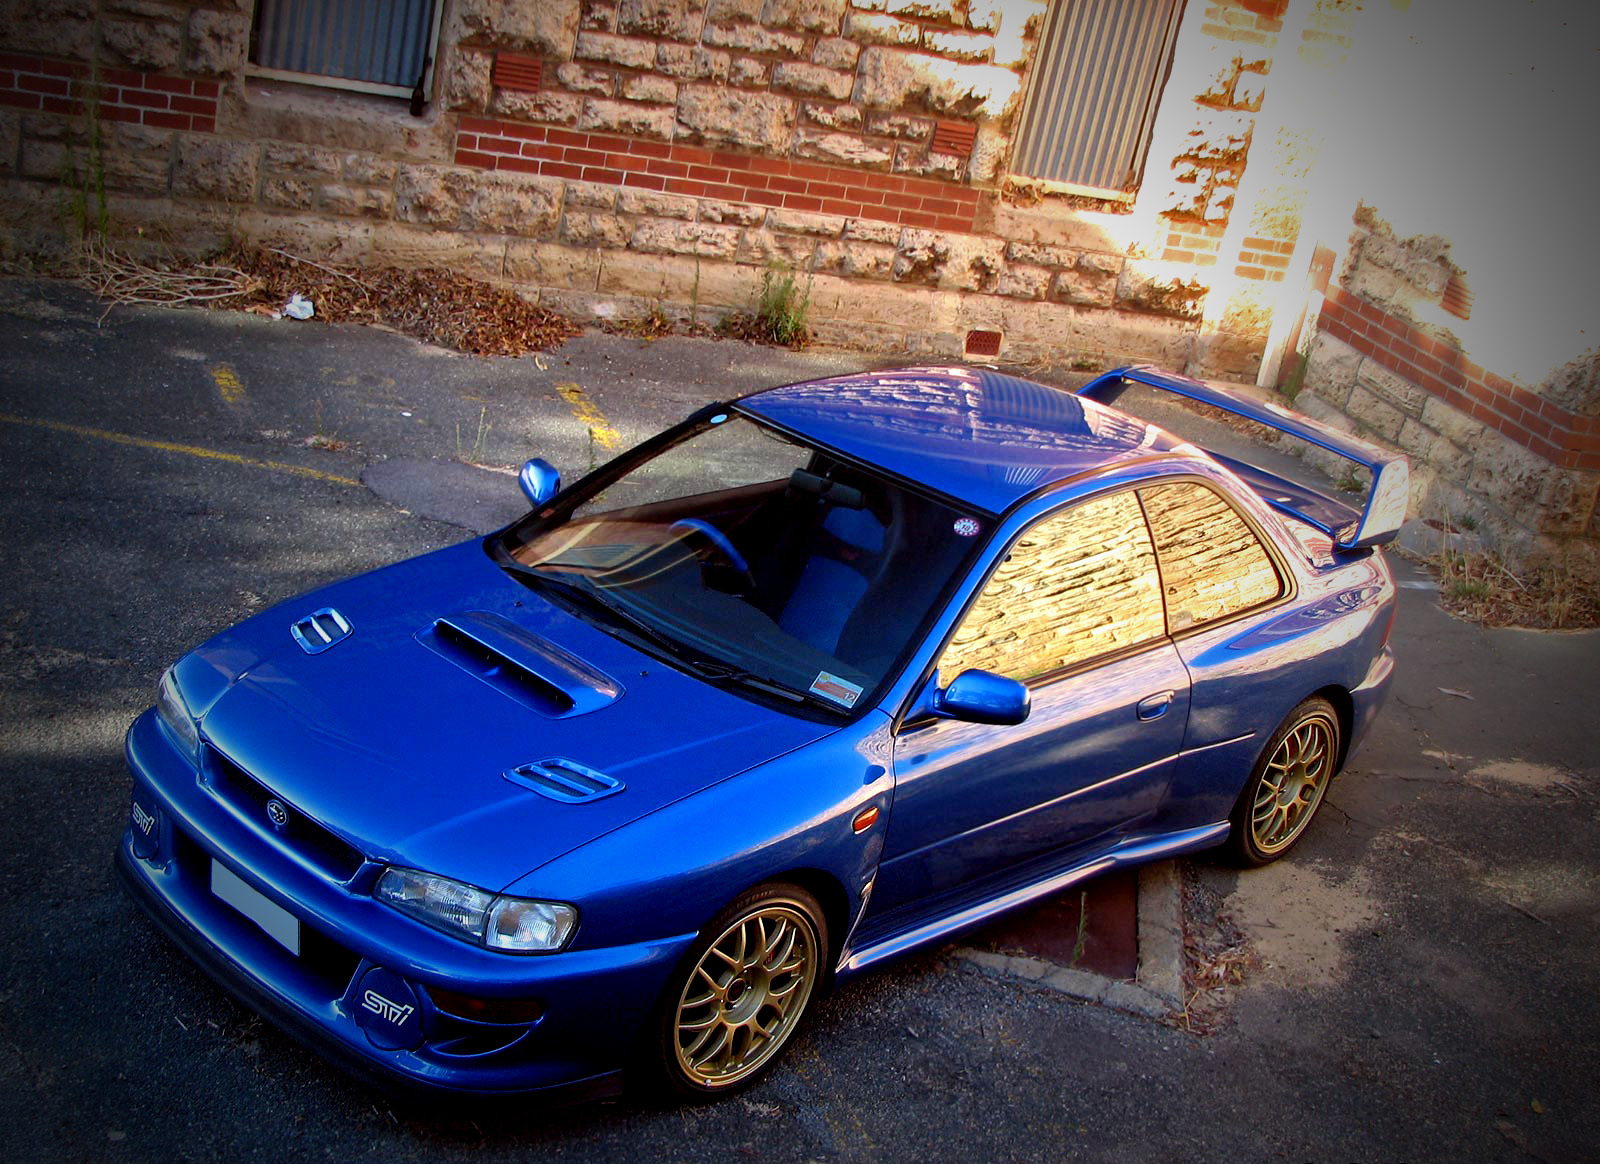 blue cars Subaru subaru HD Wallpaper